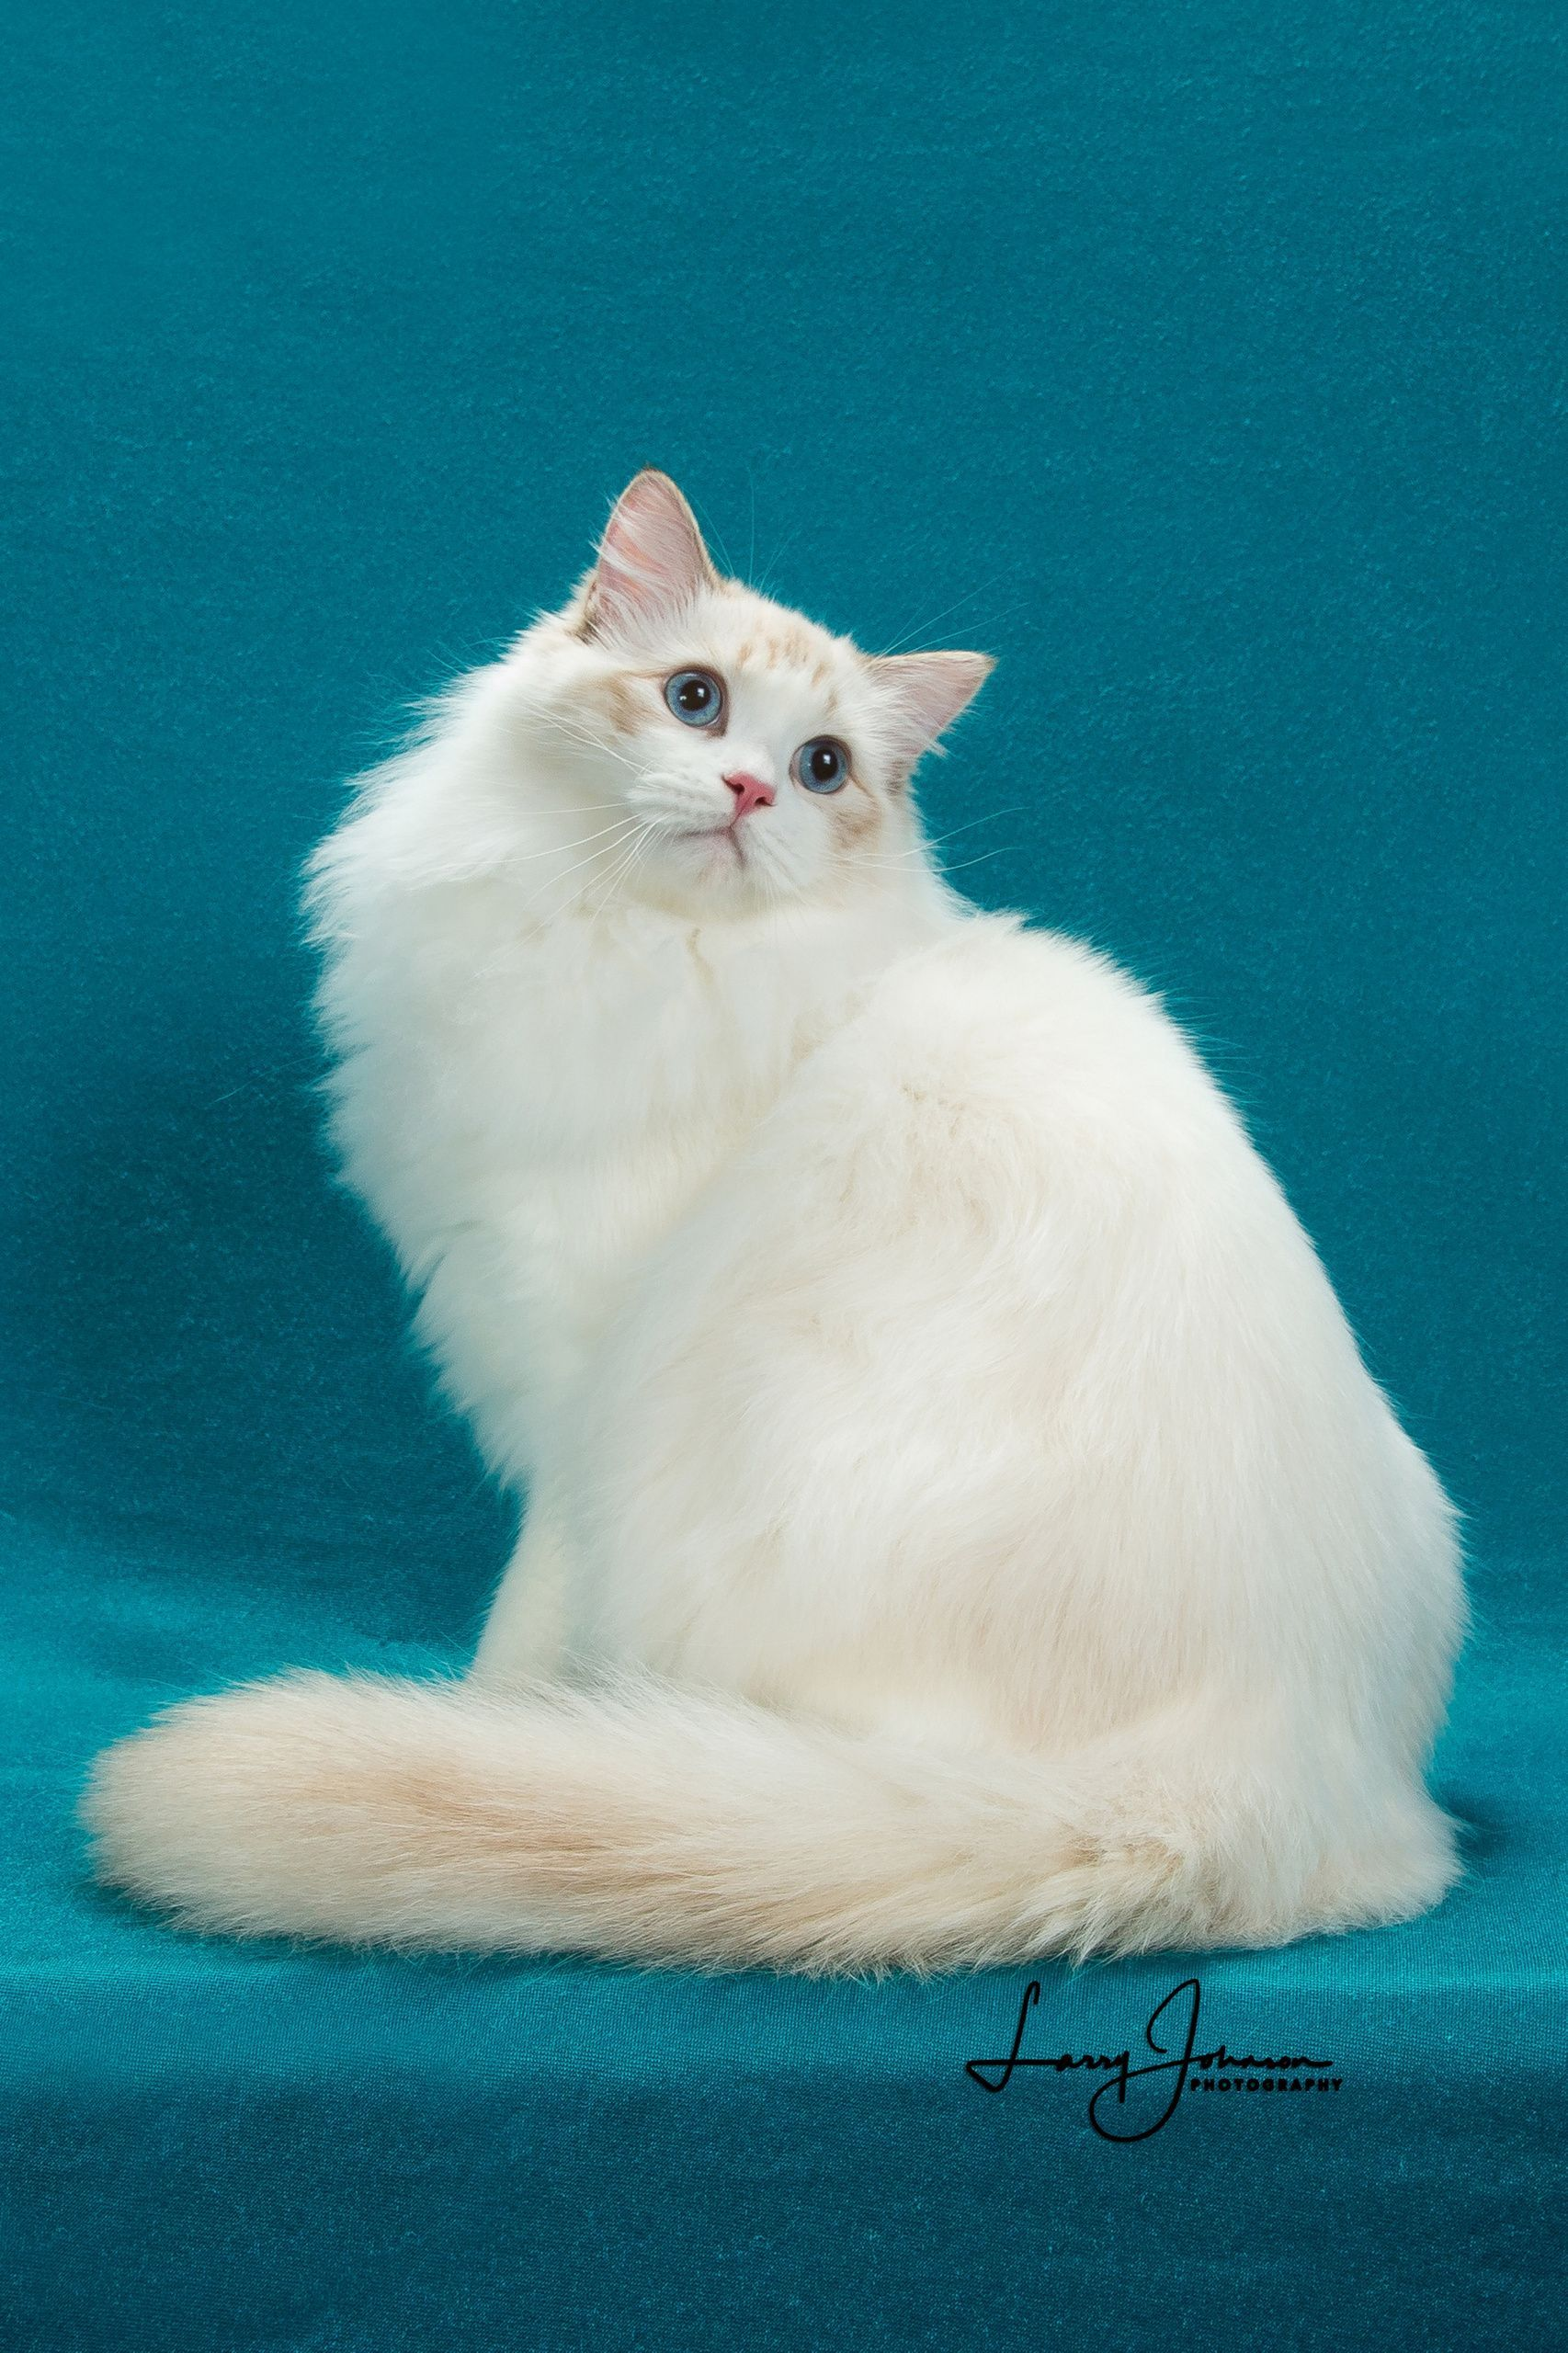 Quality Home Raised Ragdoll Kittens From A Reputable Breeder In Tuscaloosa Al Transport Available Nationwide Www Fac Cat Breeder Ragdoll Cat Ragdoll Kitten